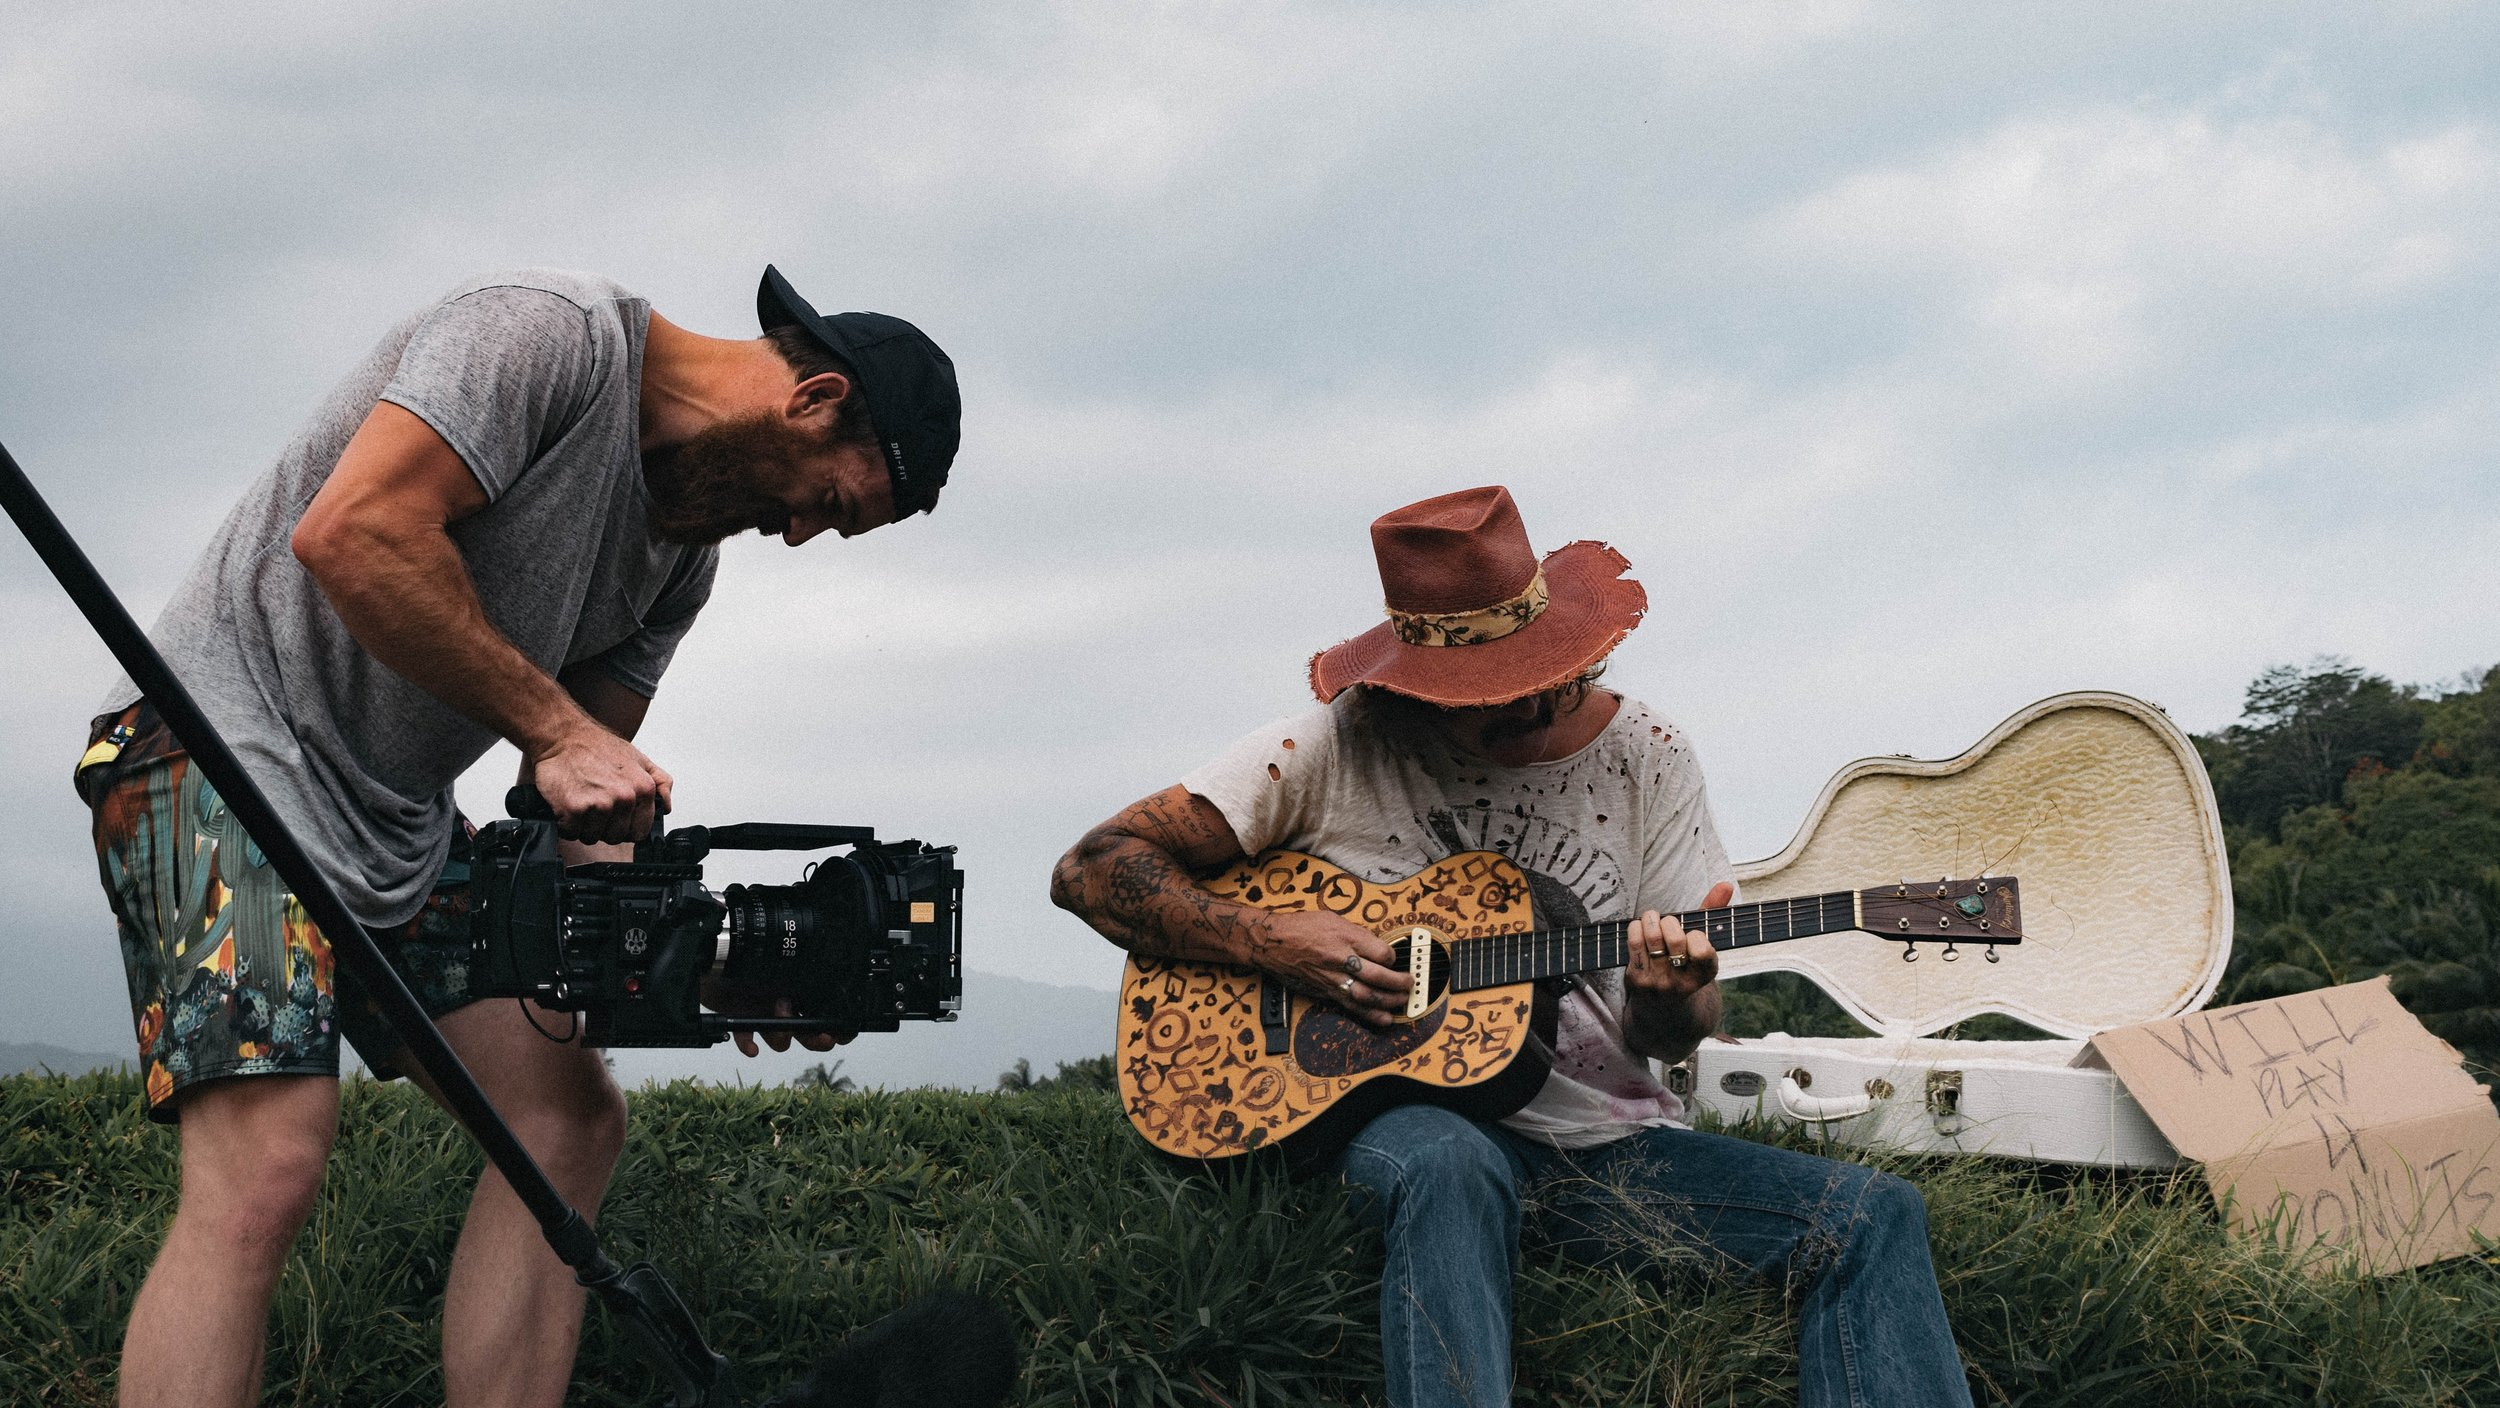 Video marketing and storyteller marketing go hand-in-hand. Try new trends like music video marketing. Photo credit: Jakob Owens